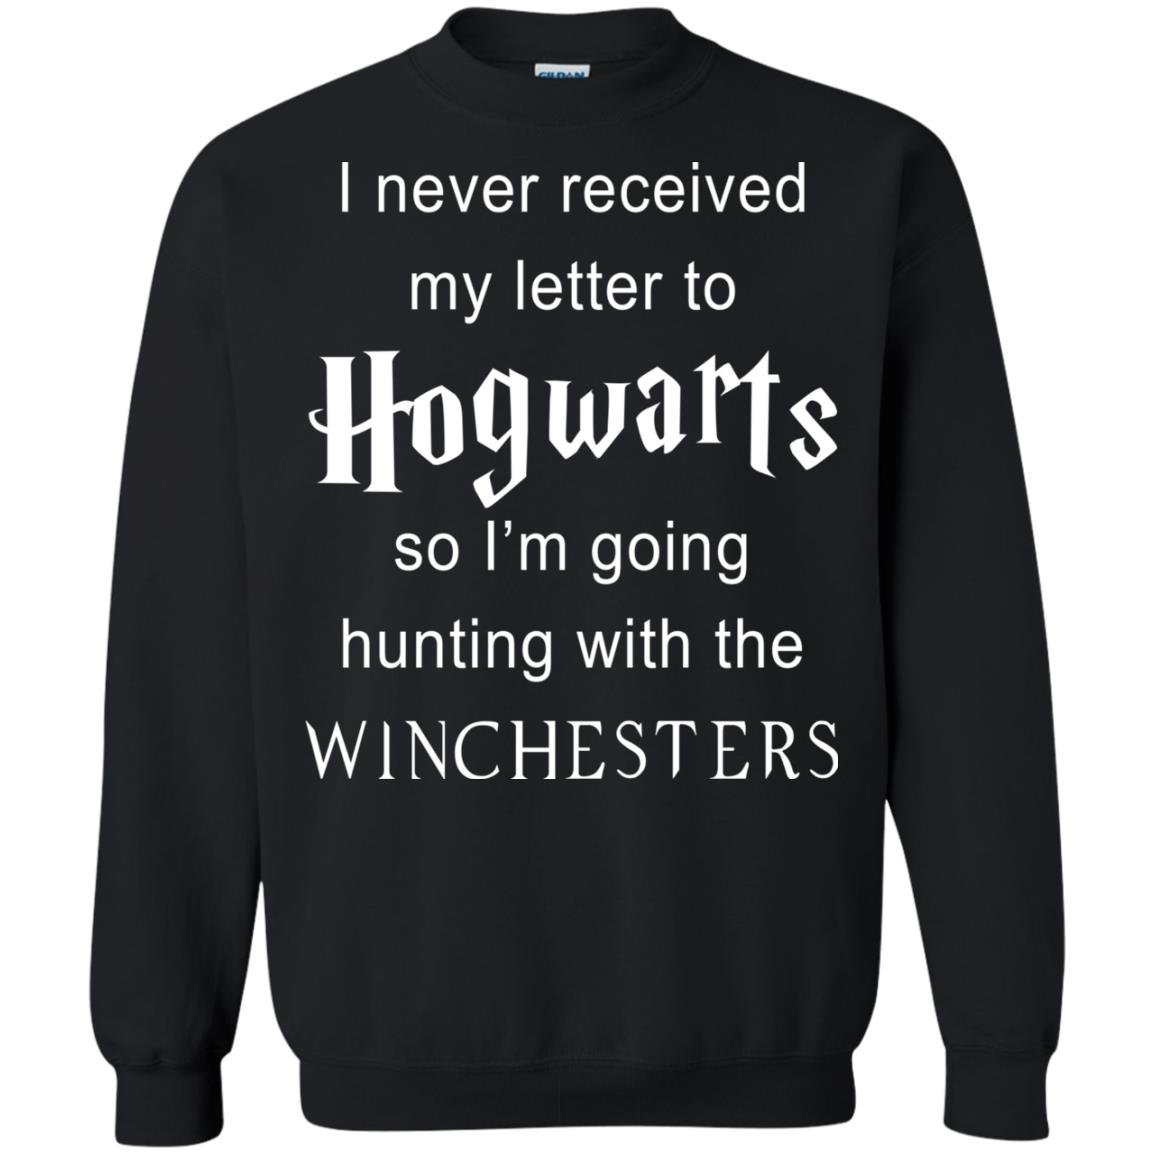 image 1948 - I never received my letter to Hogwarts shirt, hoodie, long sleeve